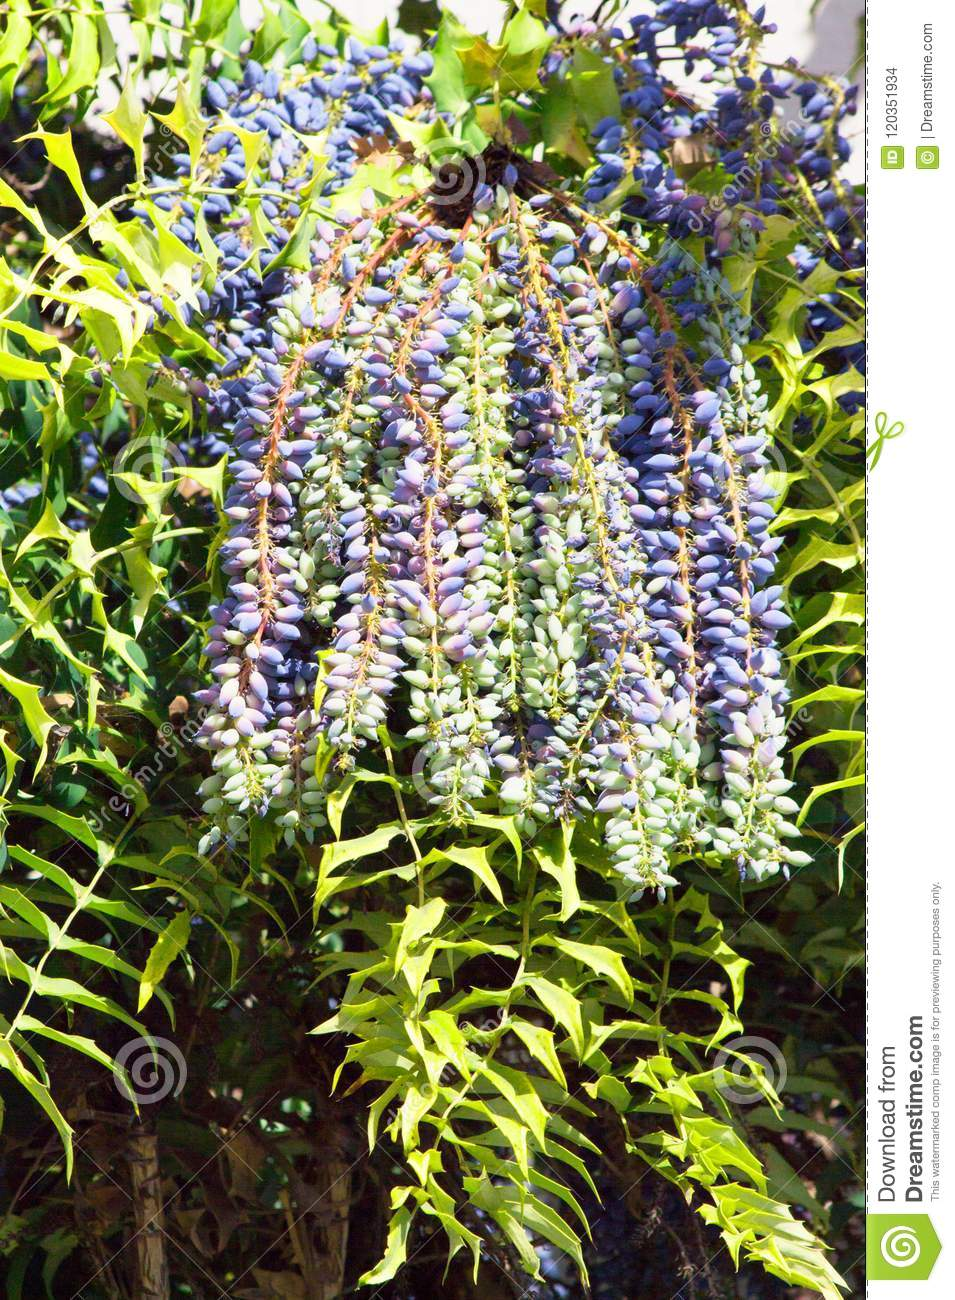 Landscaping With An Upright Shrub With Distrinctive Evergreen